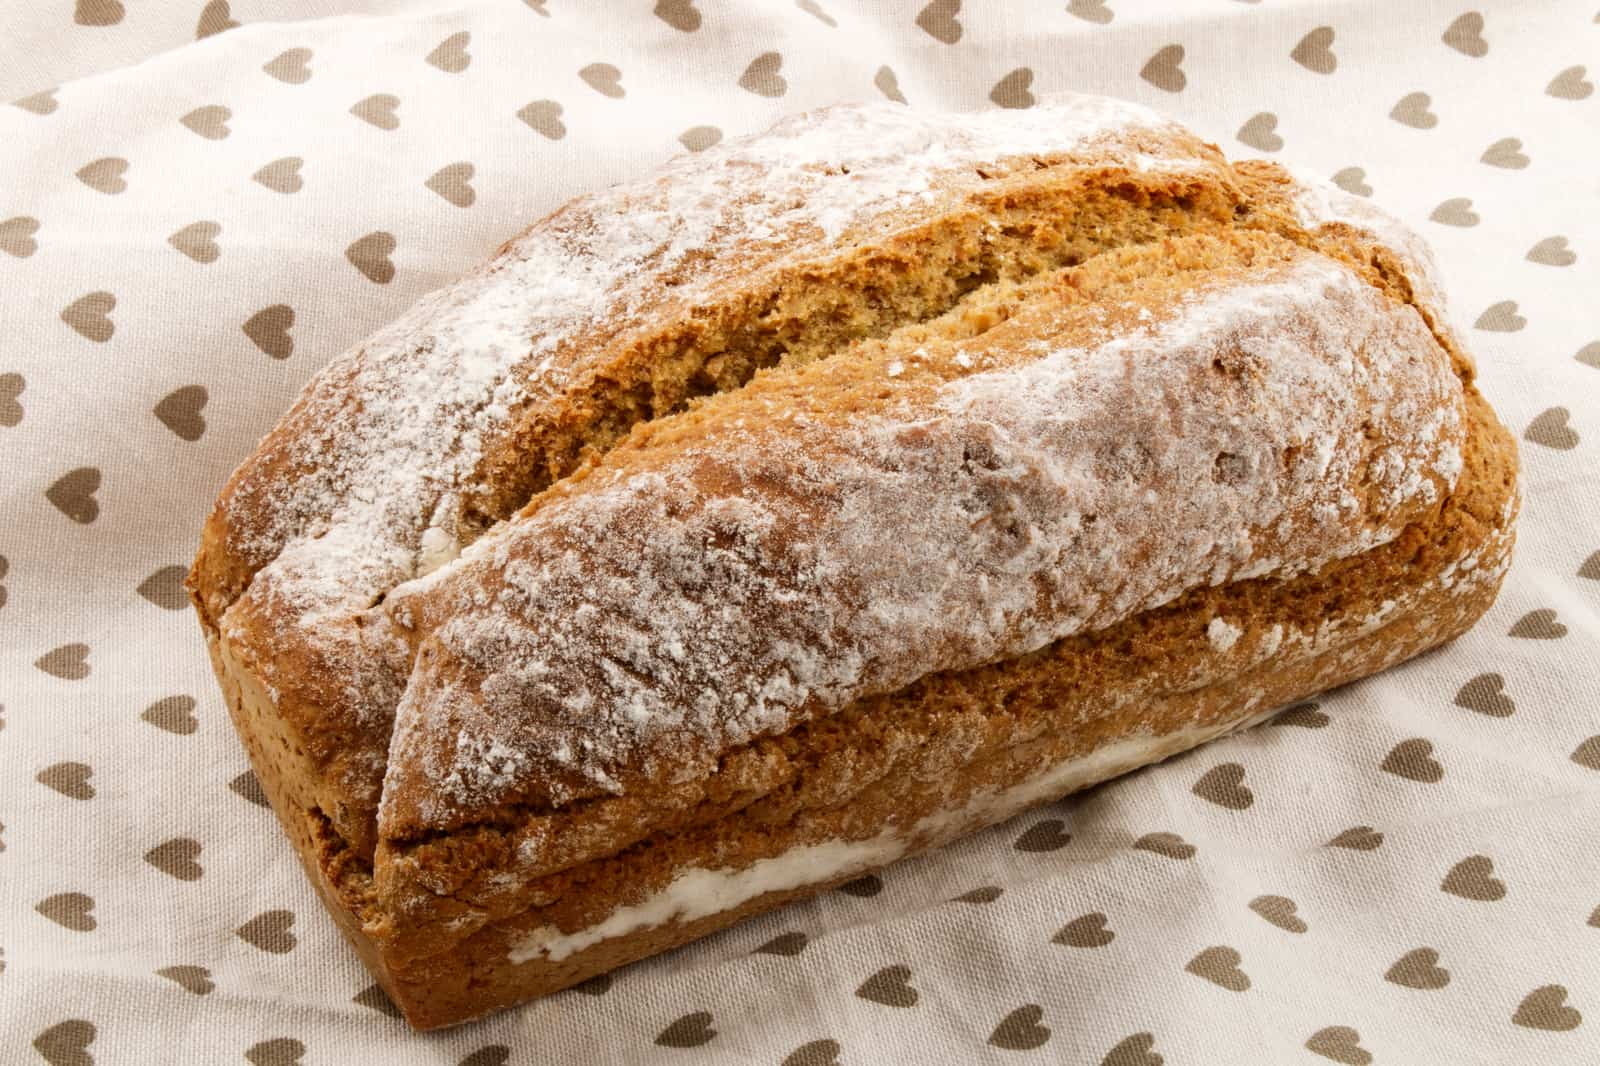 A close up of a piece of bread